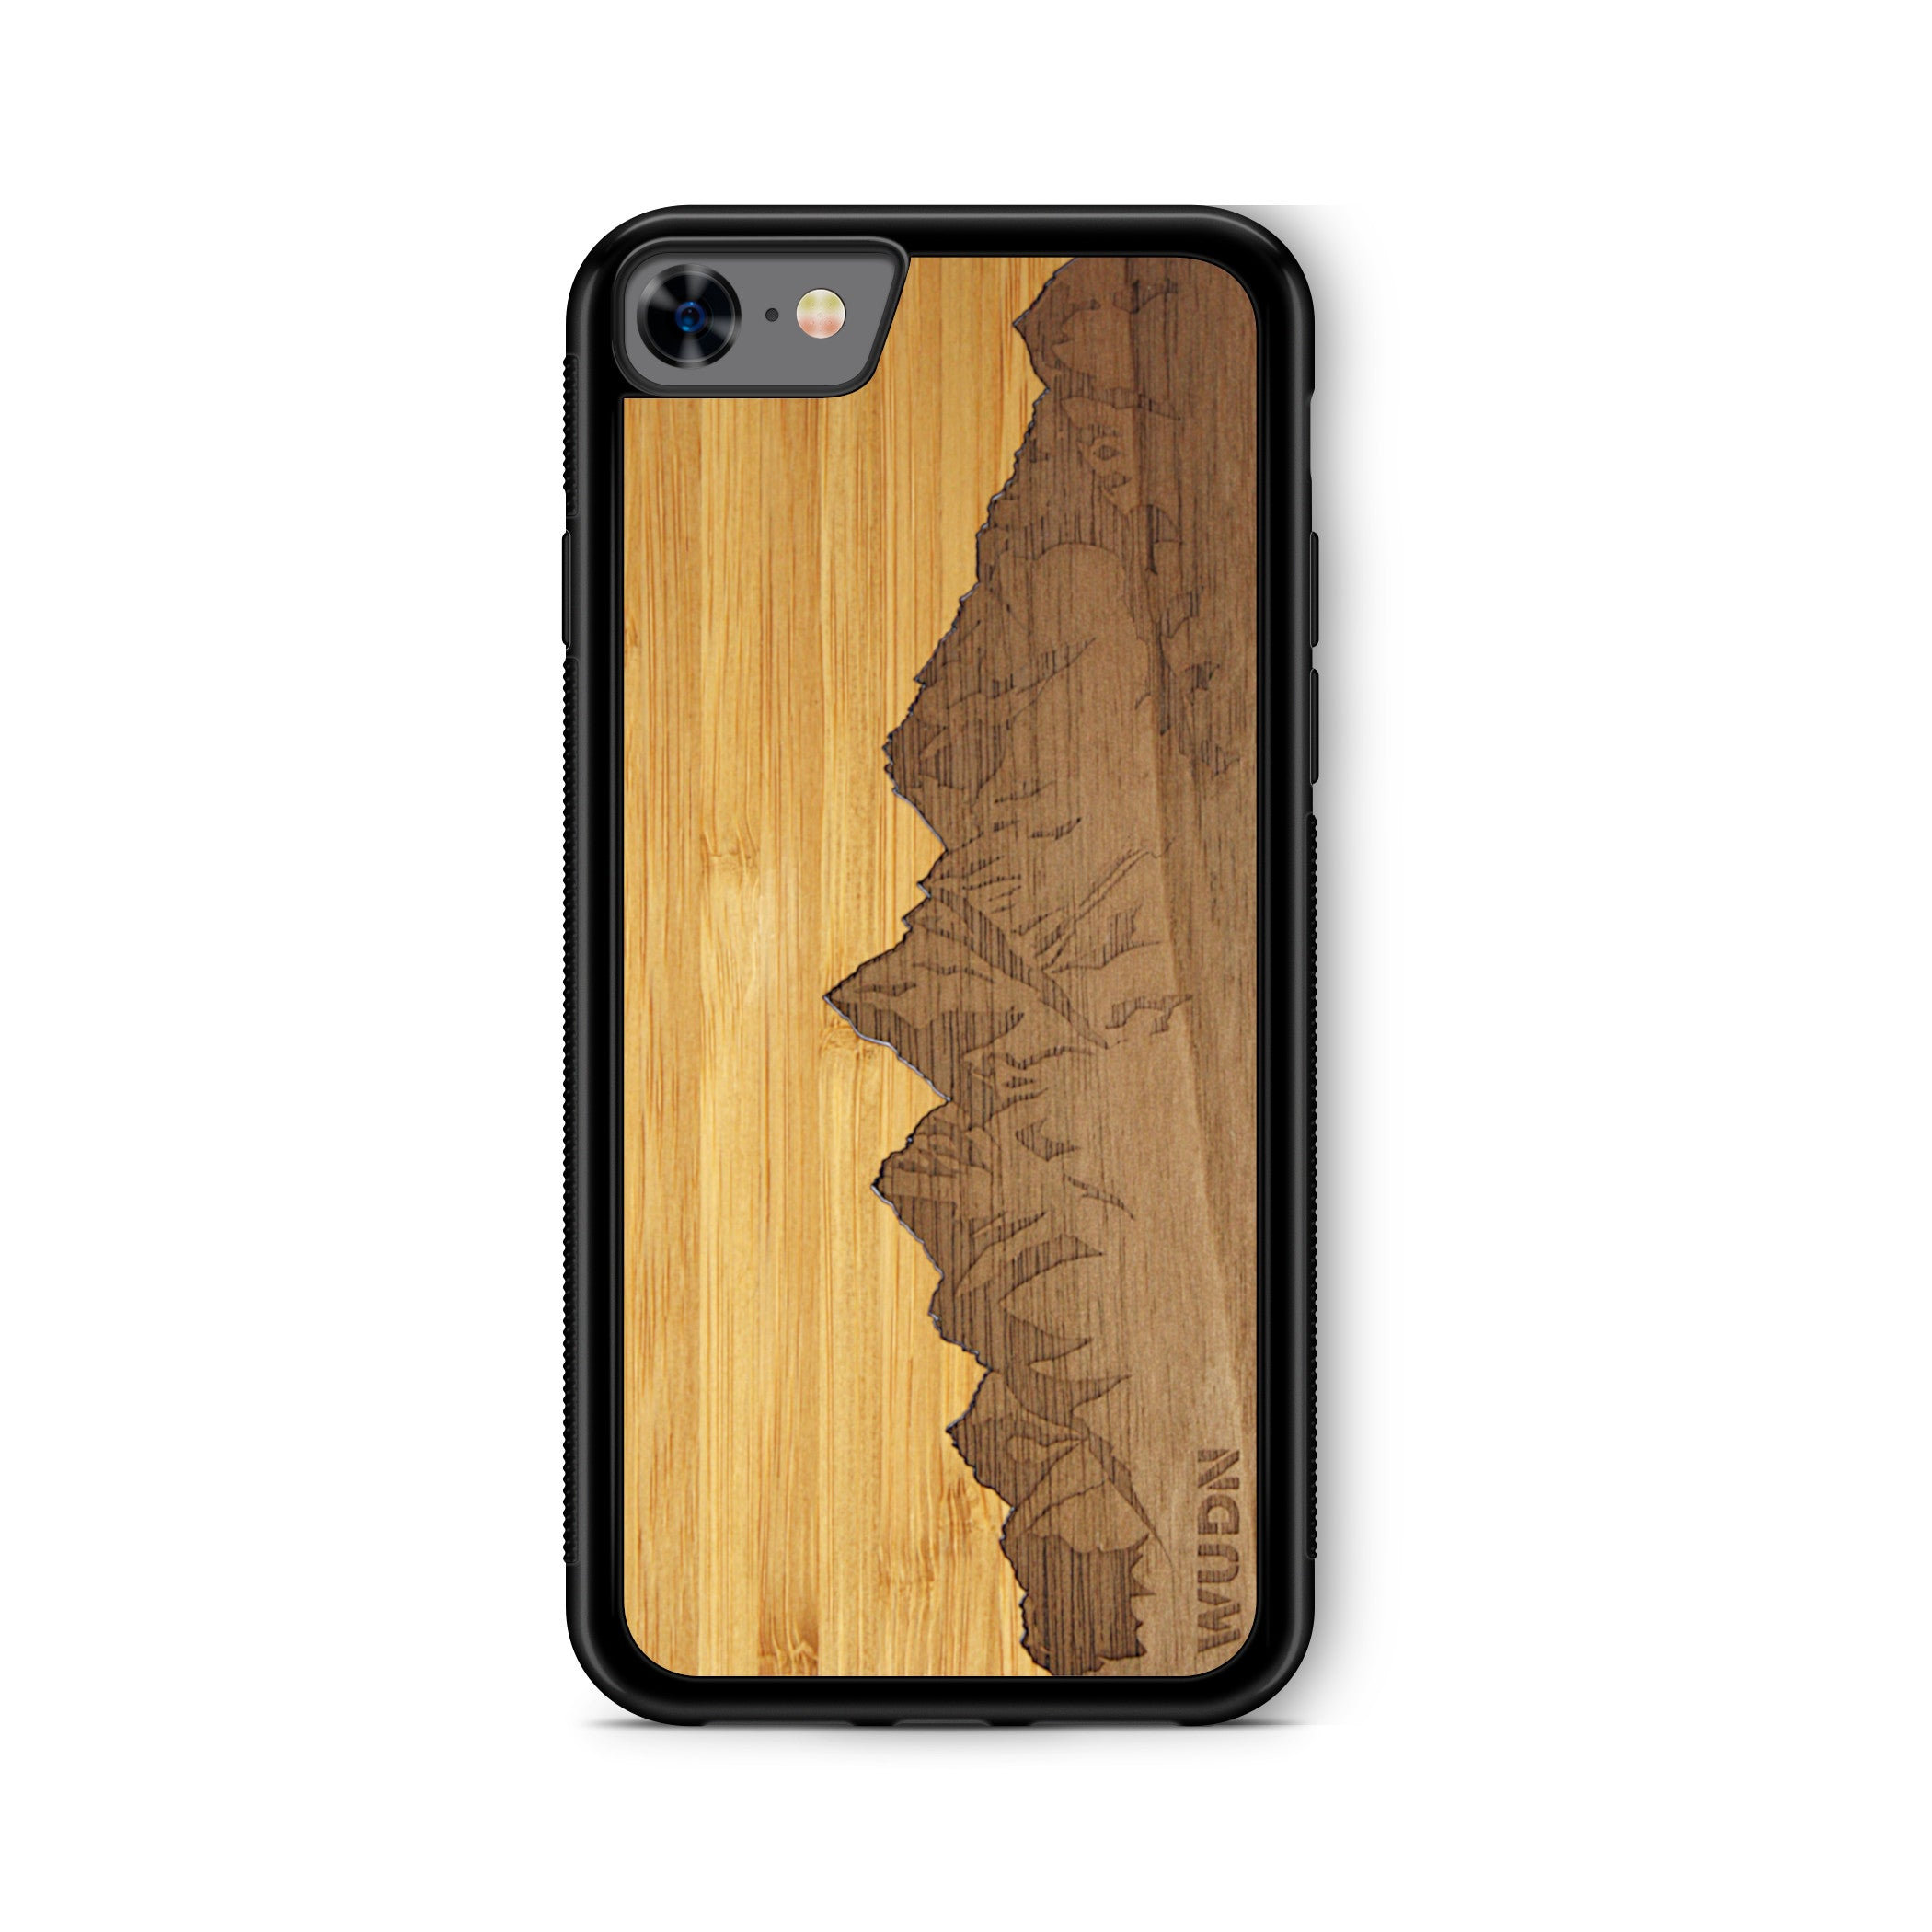 Slim Wooden Phone Case | Sawtooth Mountains Traveler, Cases by WUDN for iPhone 7 / 8 / SE